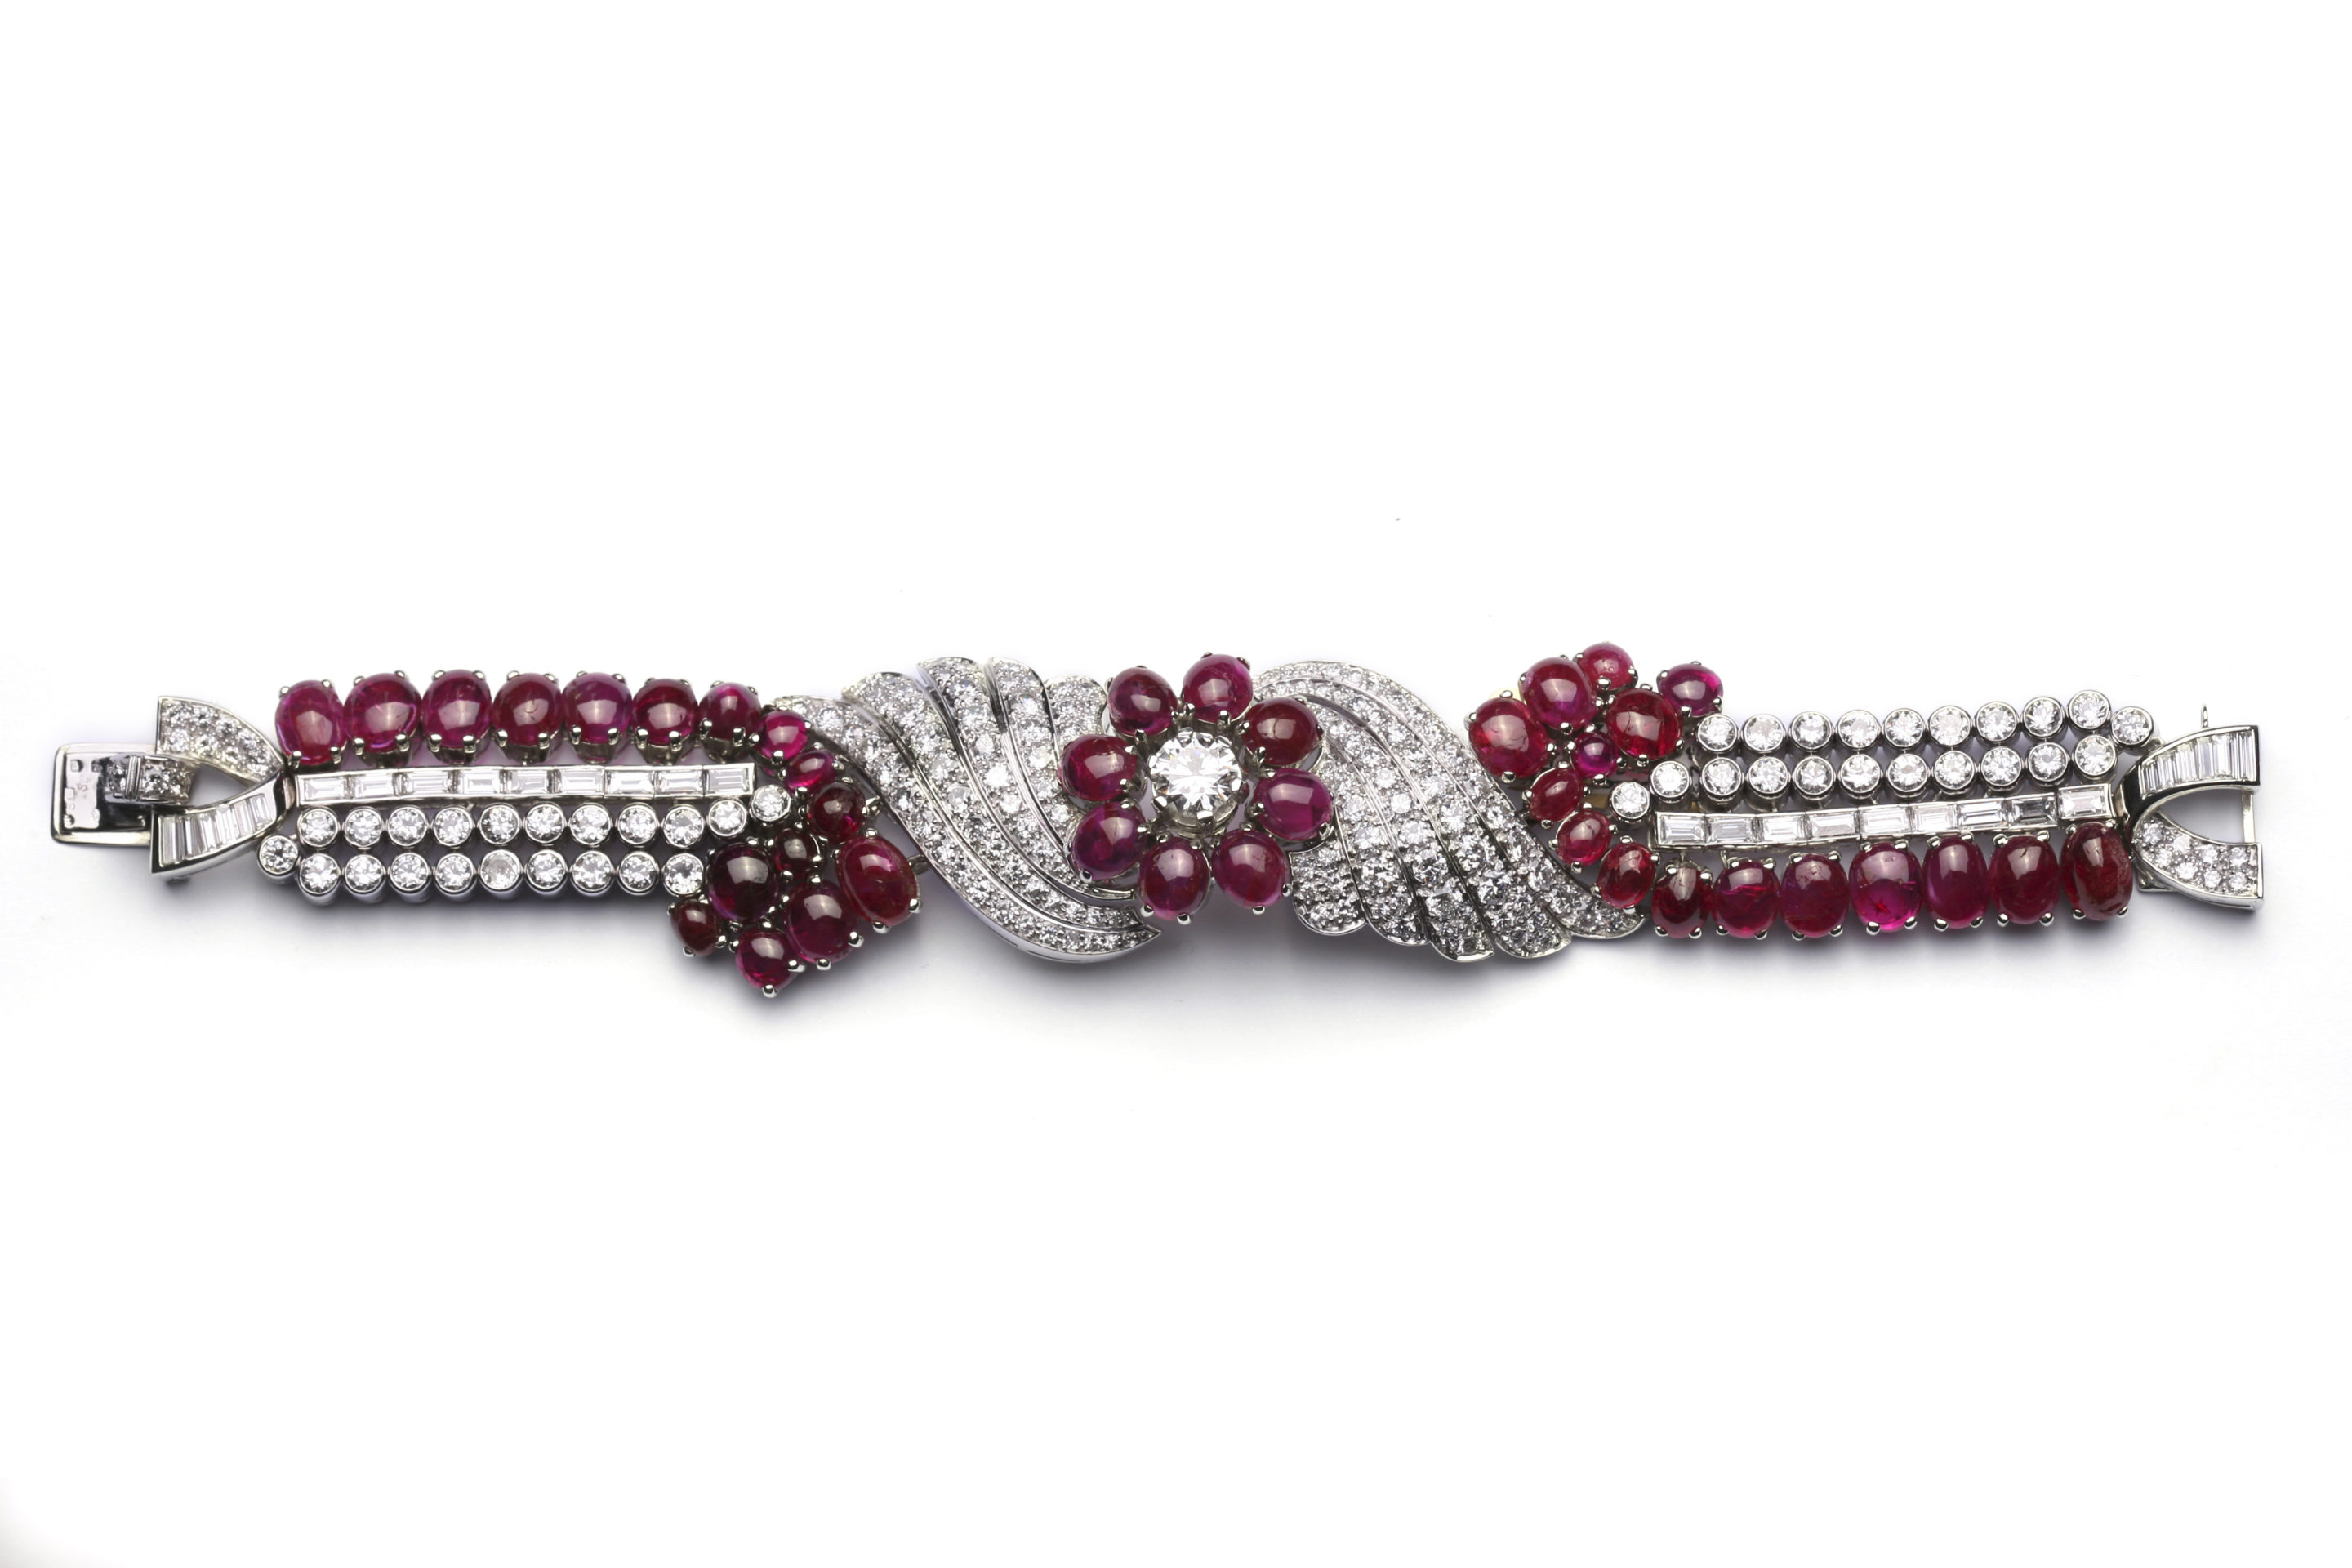 j bracelet diamond id jewelry bulgari for ruby at bracelets bangle sale bangles z iconic